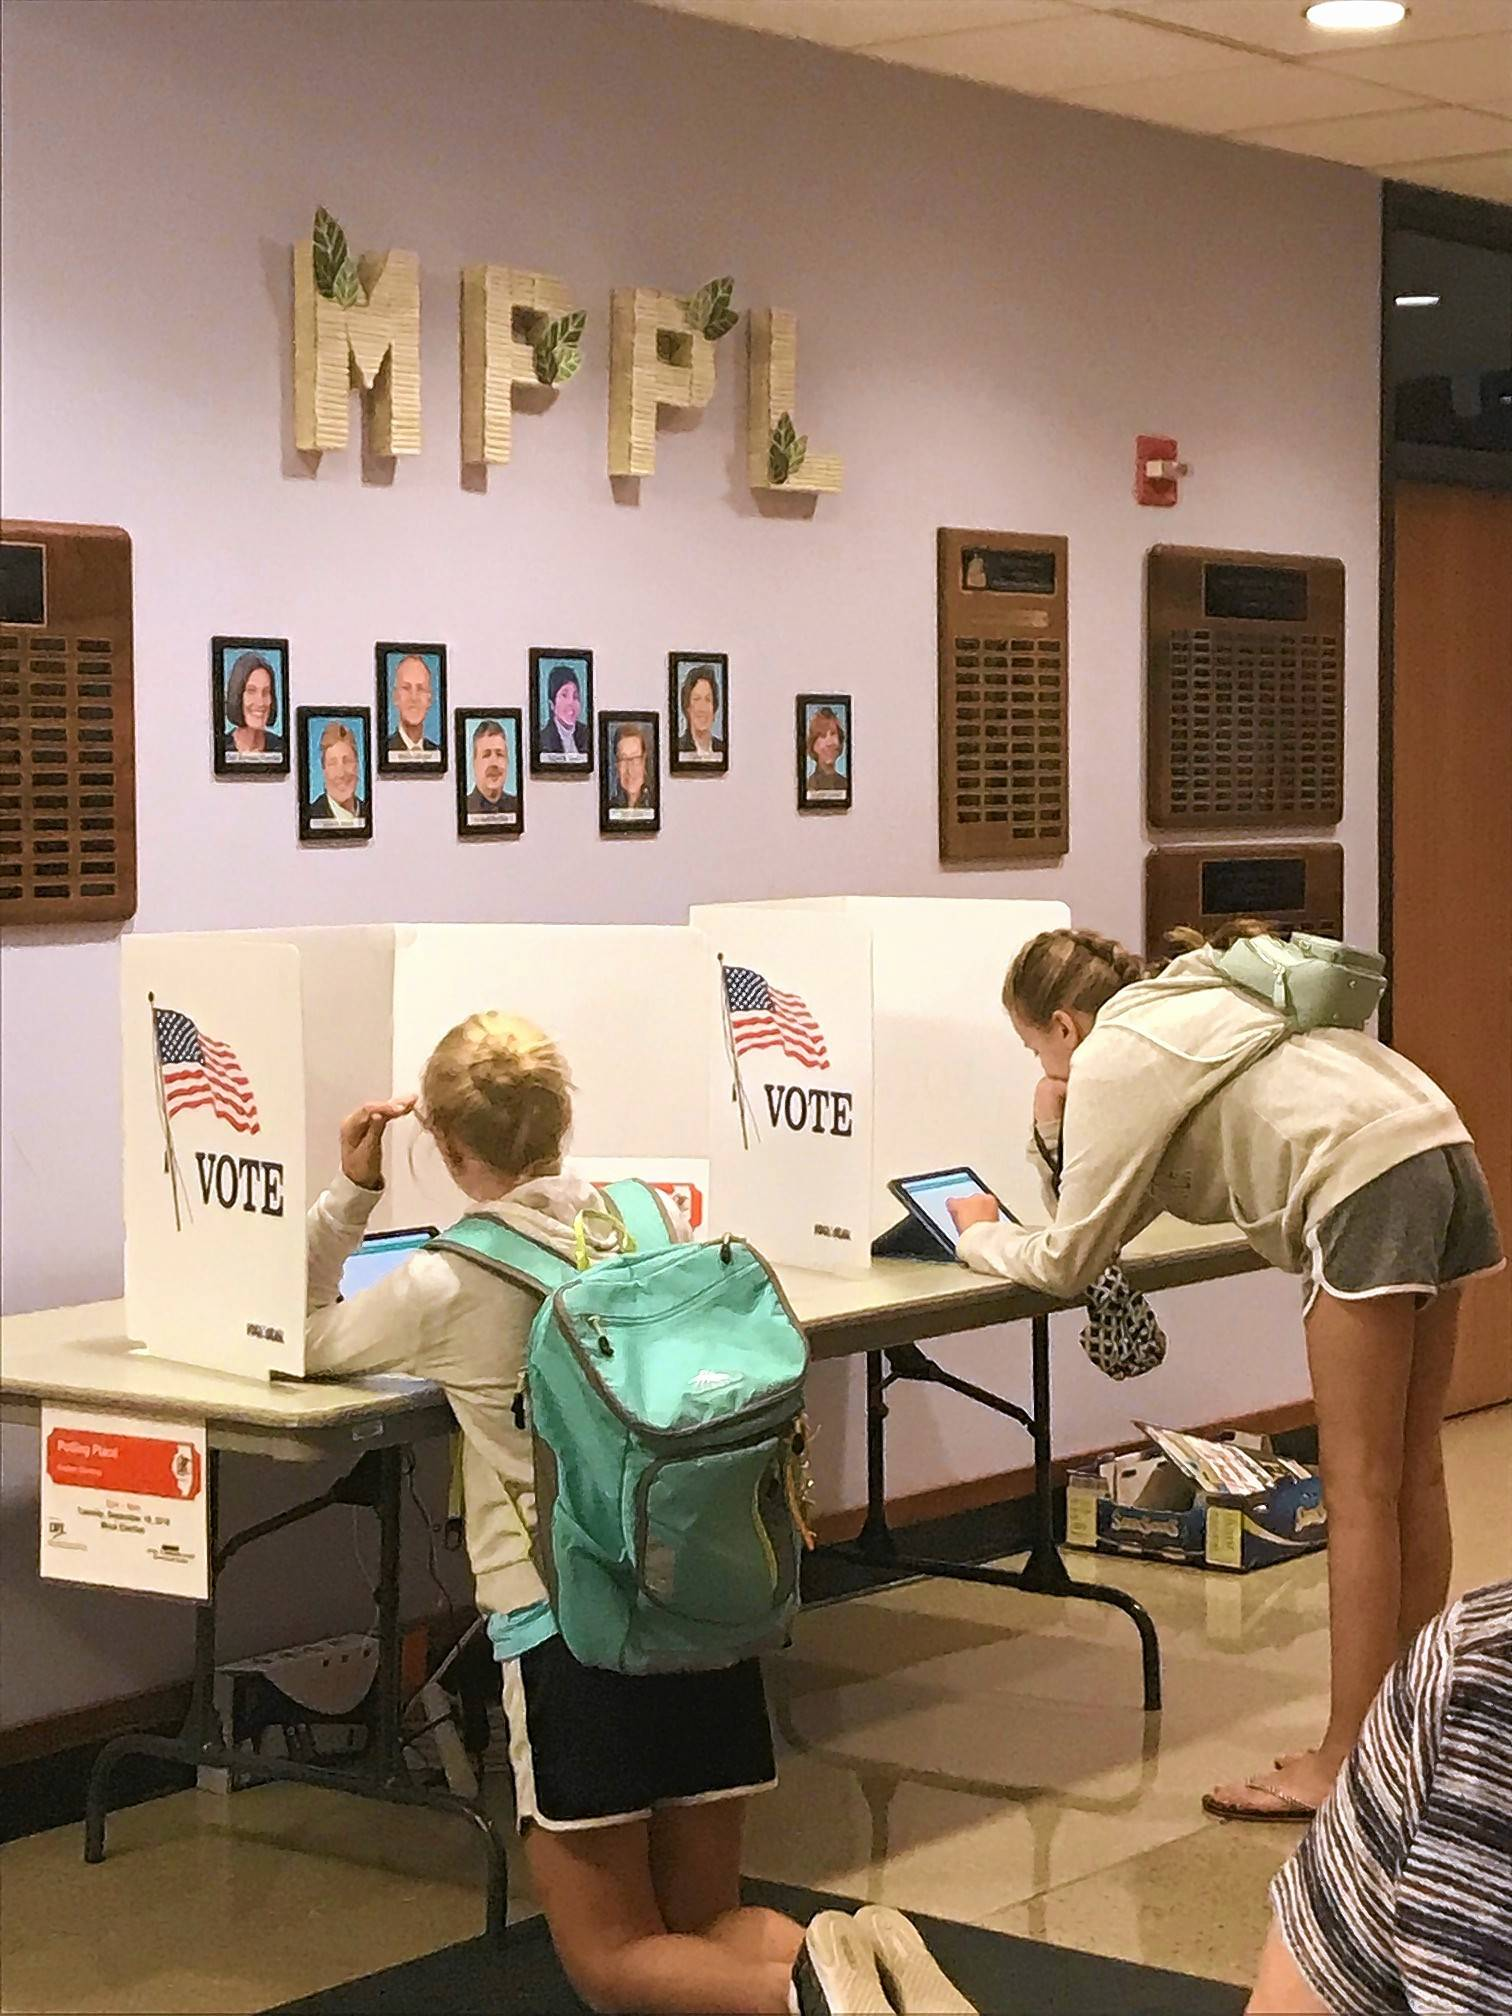 Teens voting at the Mount Prospect Public Library during a mock election event that the League of Women Voters Arlington Heights-Mount Prospect-Buffalo Grove hosted.Stacey Tobin